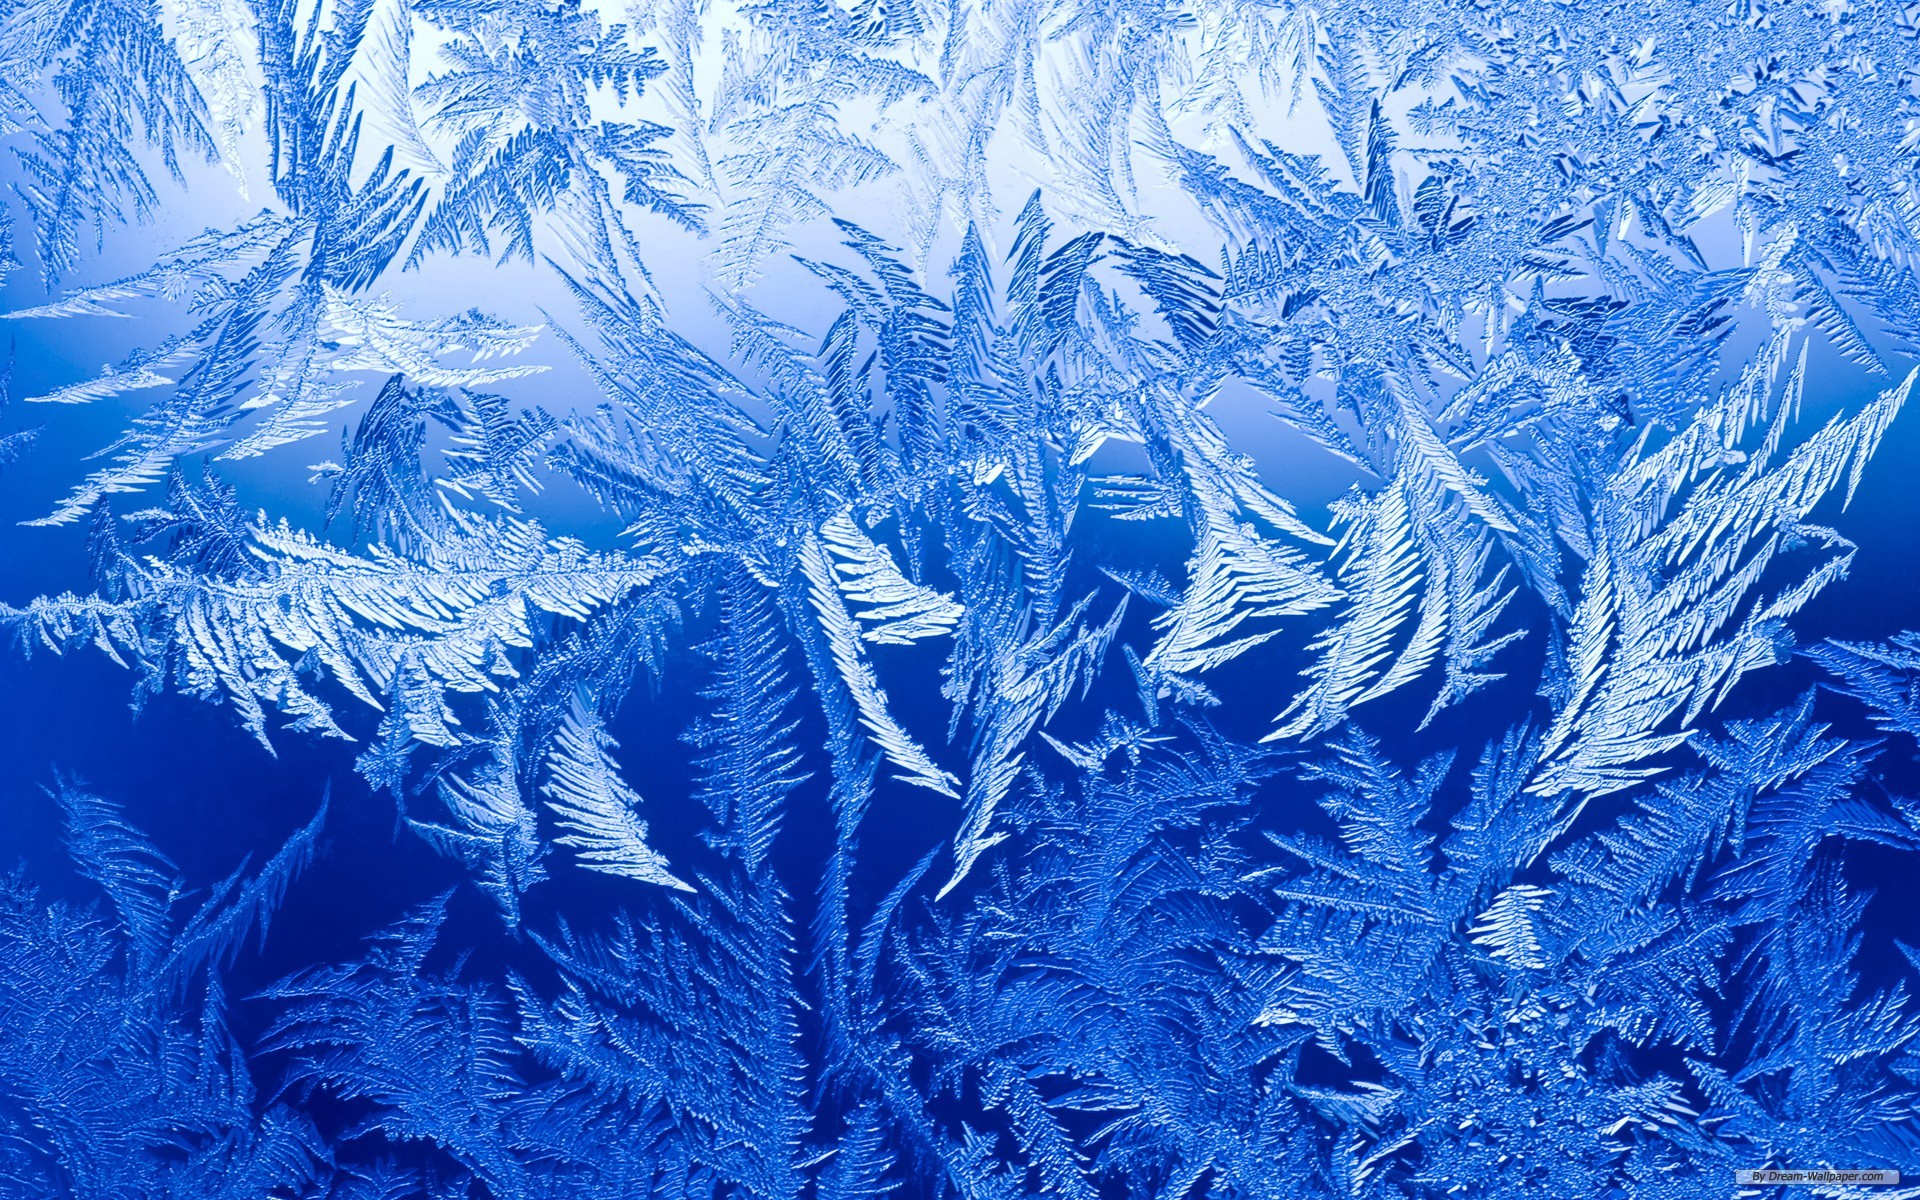 Free Photography wallpaper - Snow and frost wallpaper - 1920x1200 wallpaper - Index 6